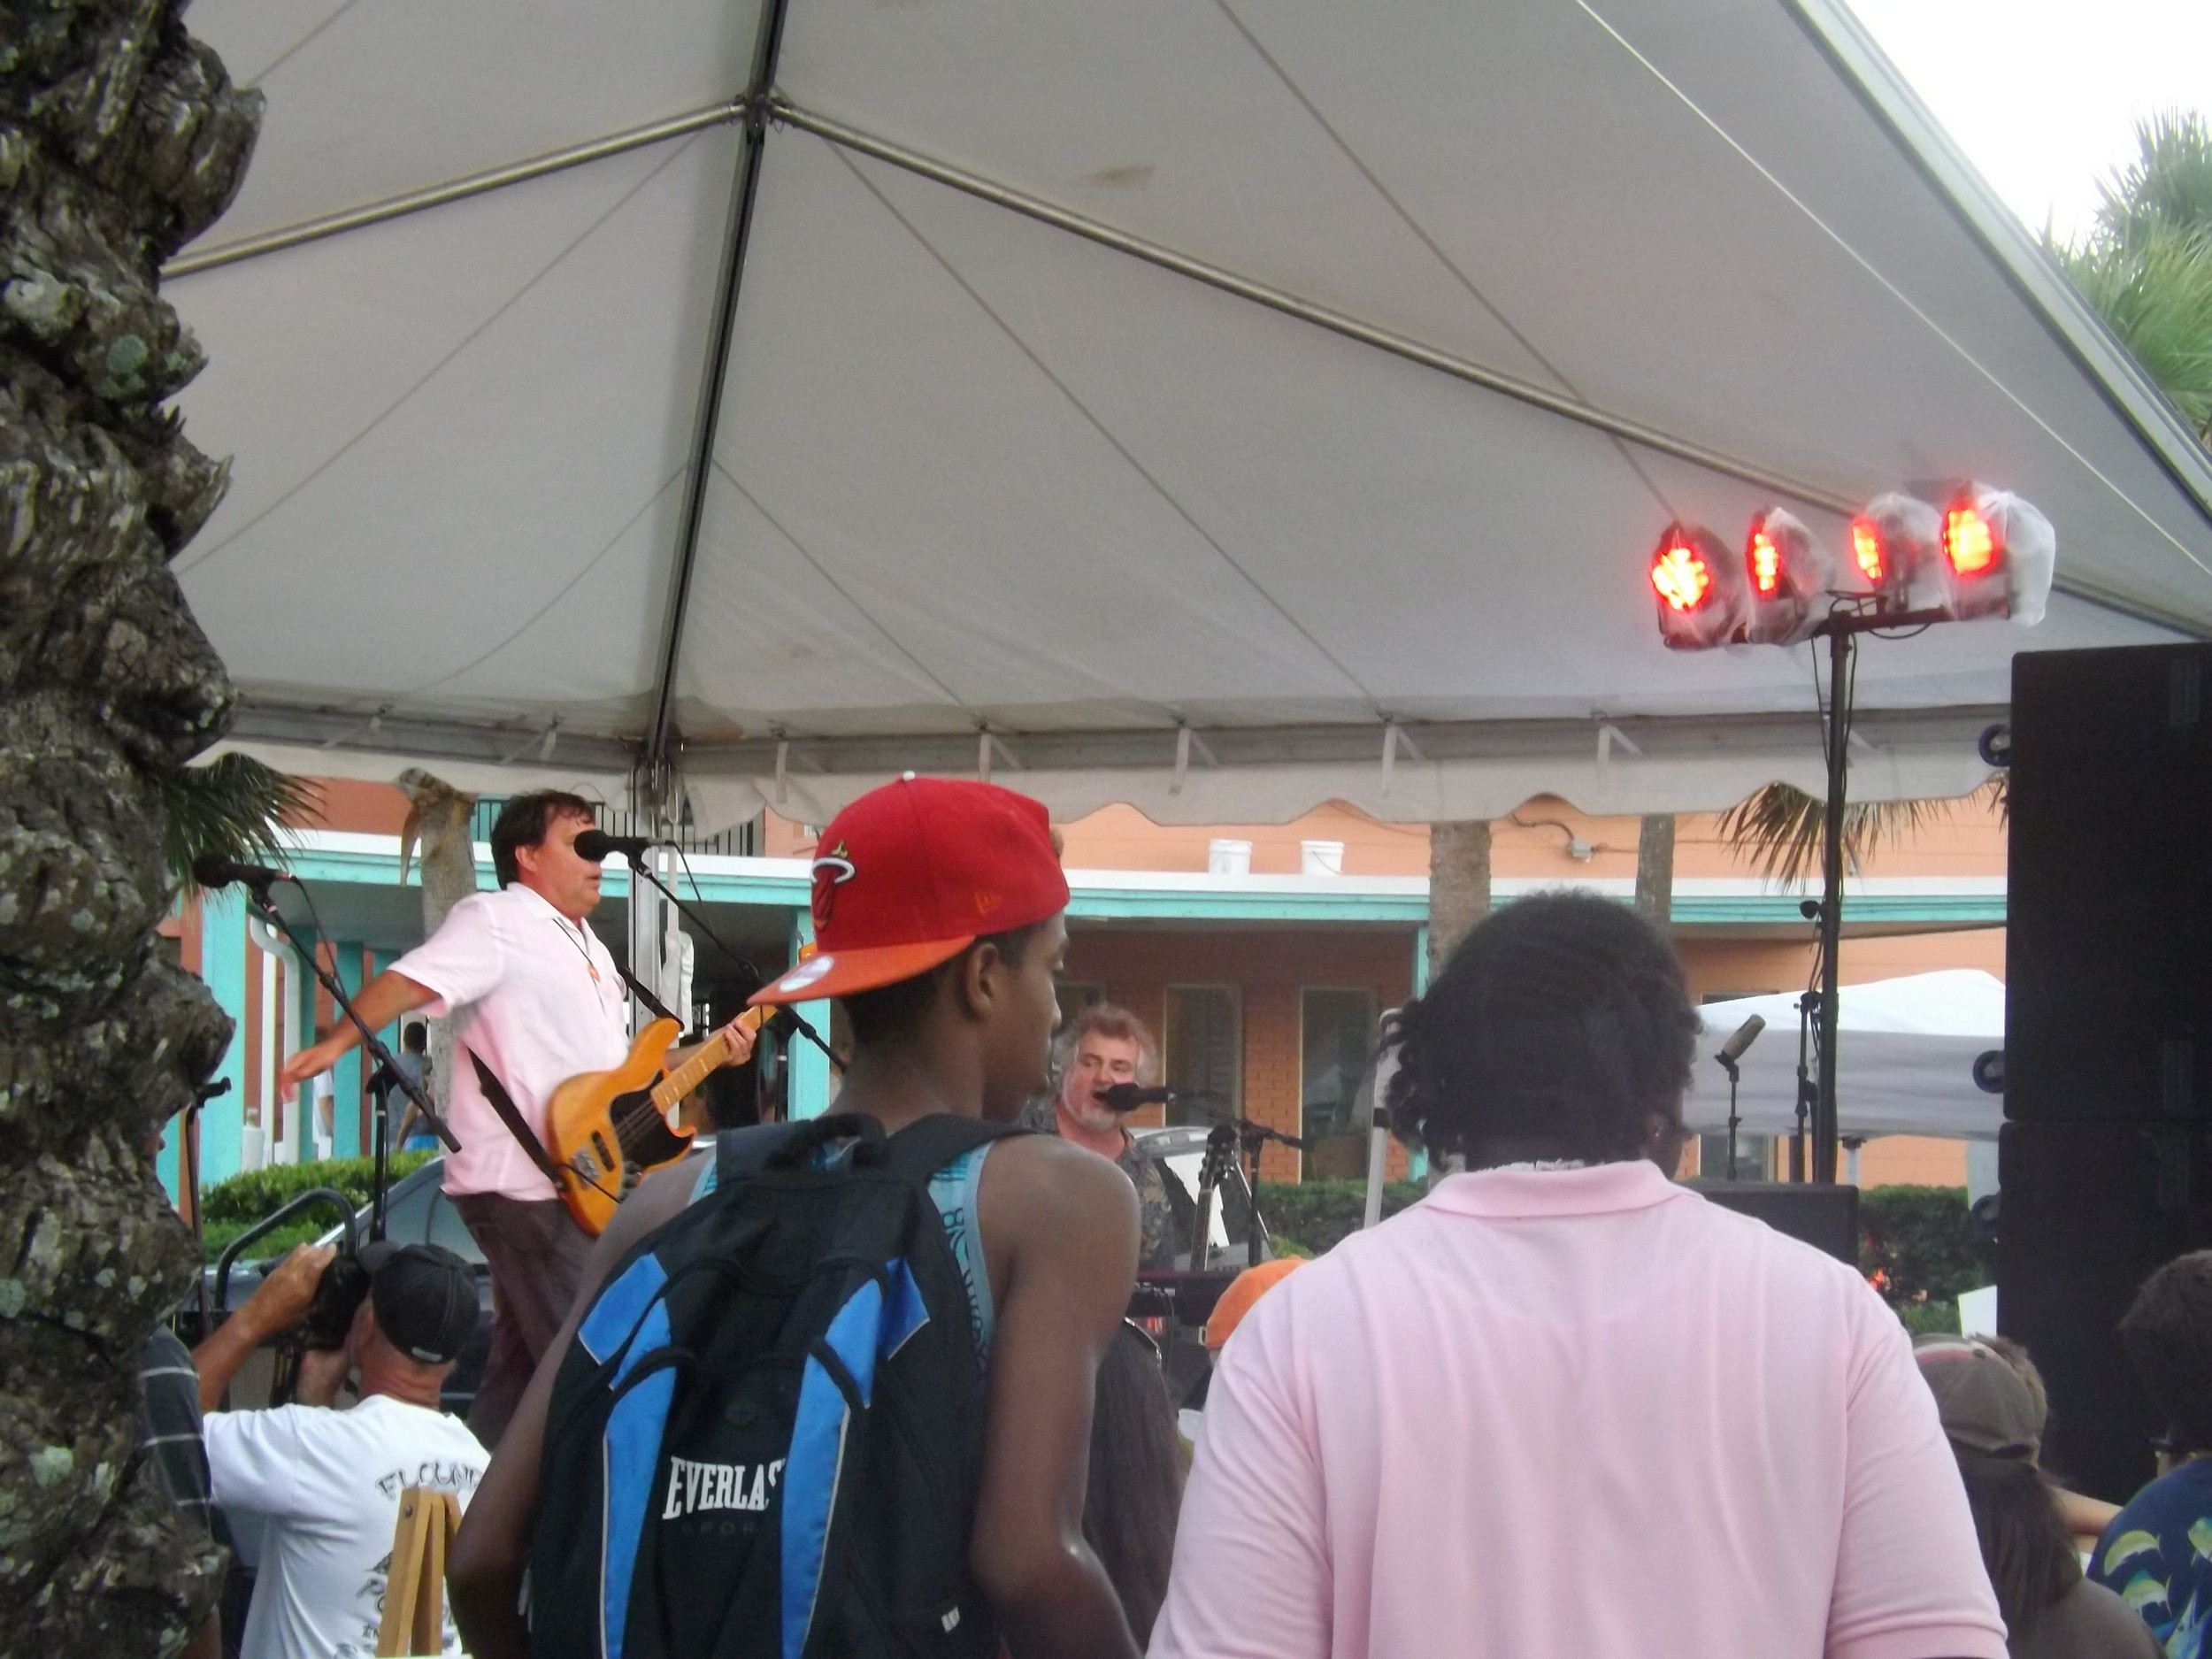 The band Bay Street, started by John Miller, contined getting the crowd into the groove.